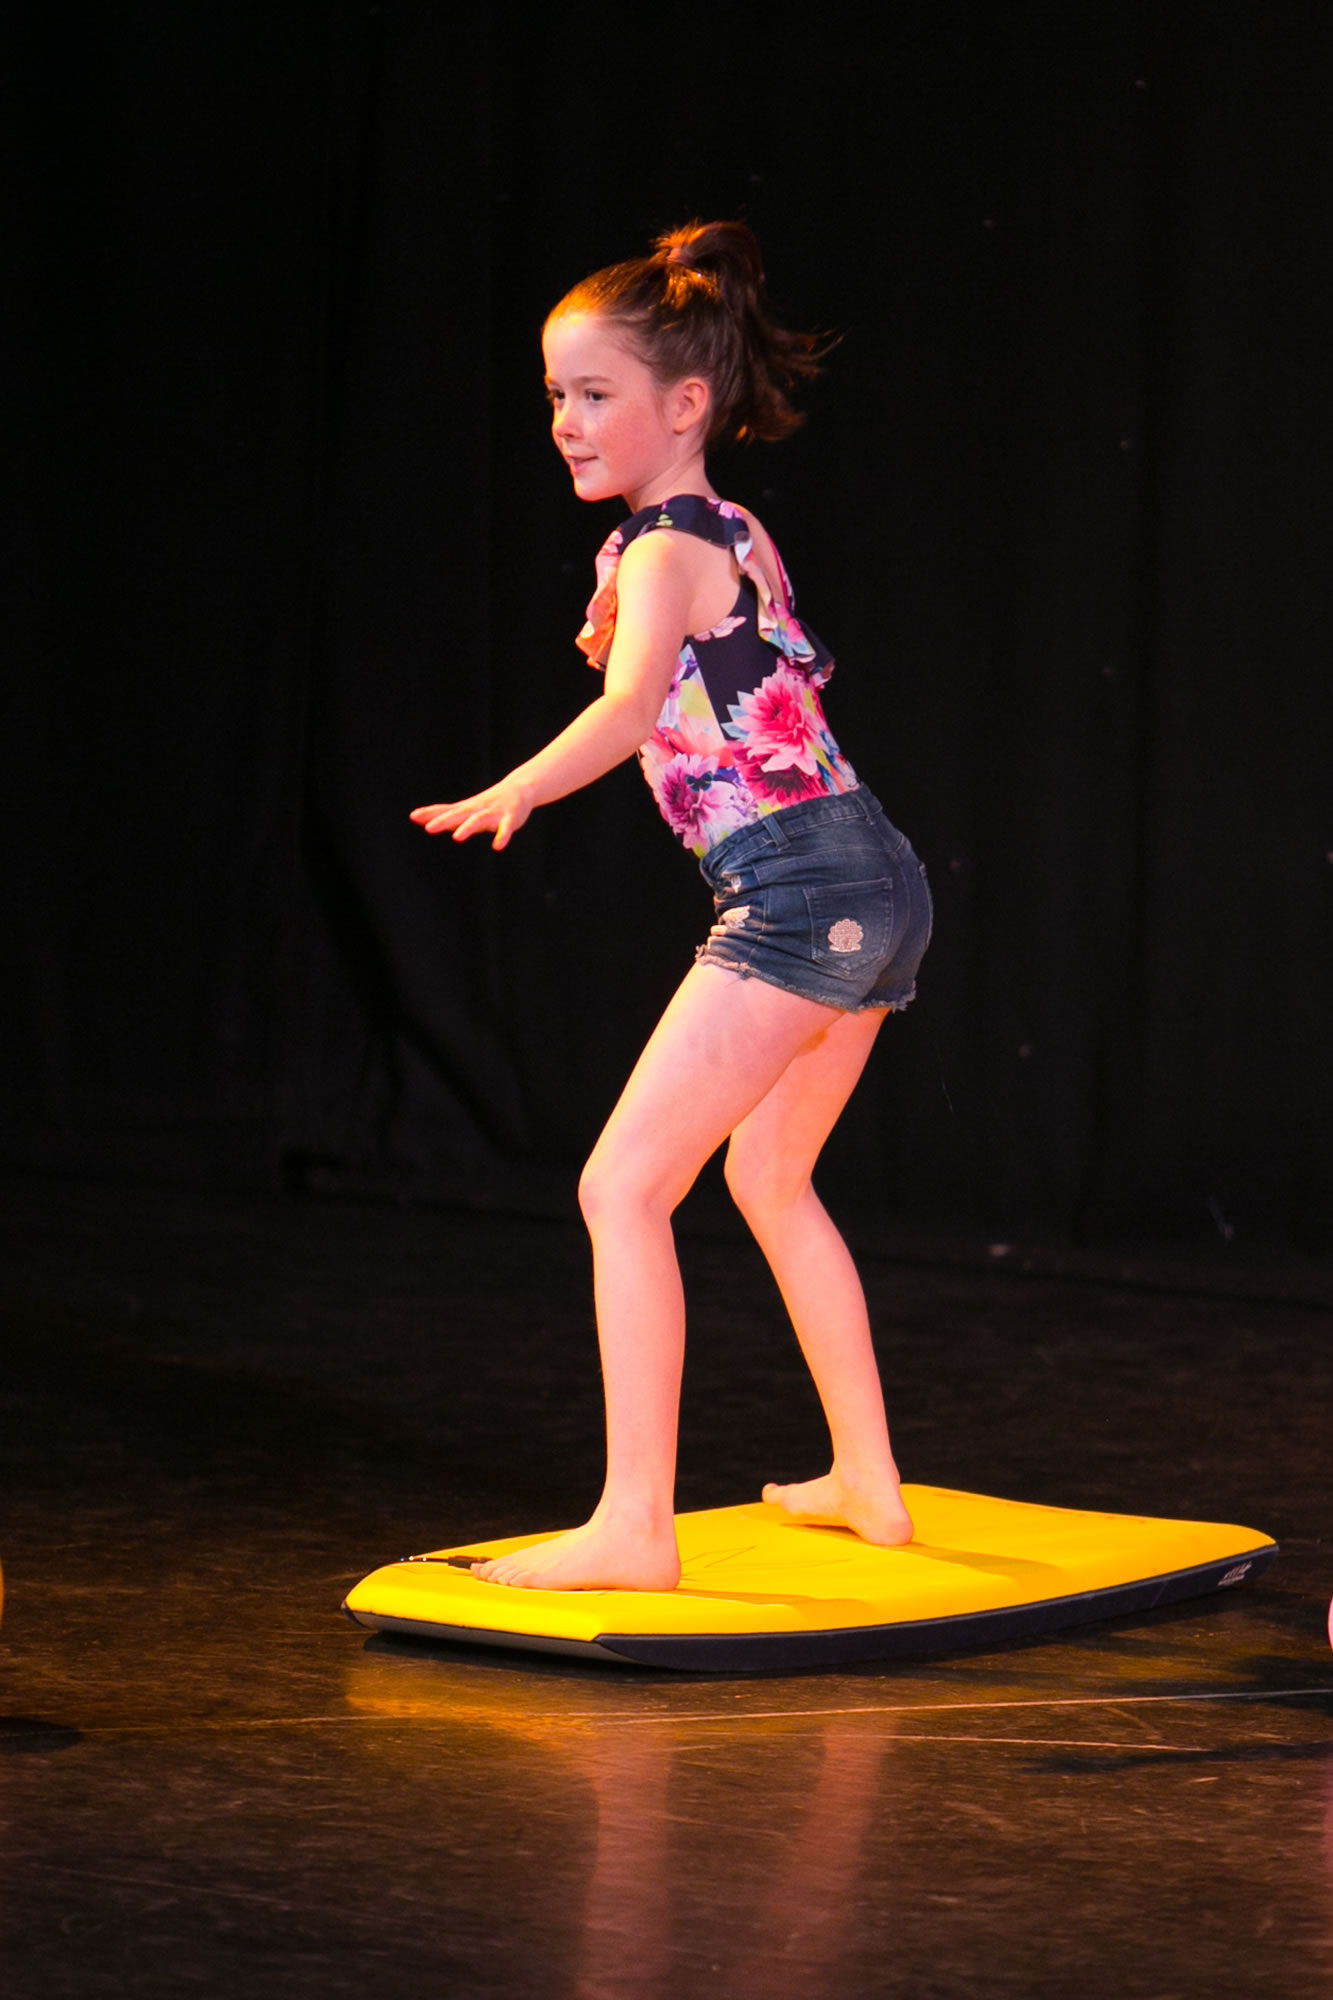 Hitchin_School_of_Dance_Show_2019-SM1_2026.jpg